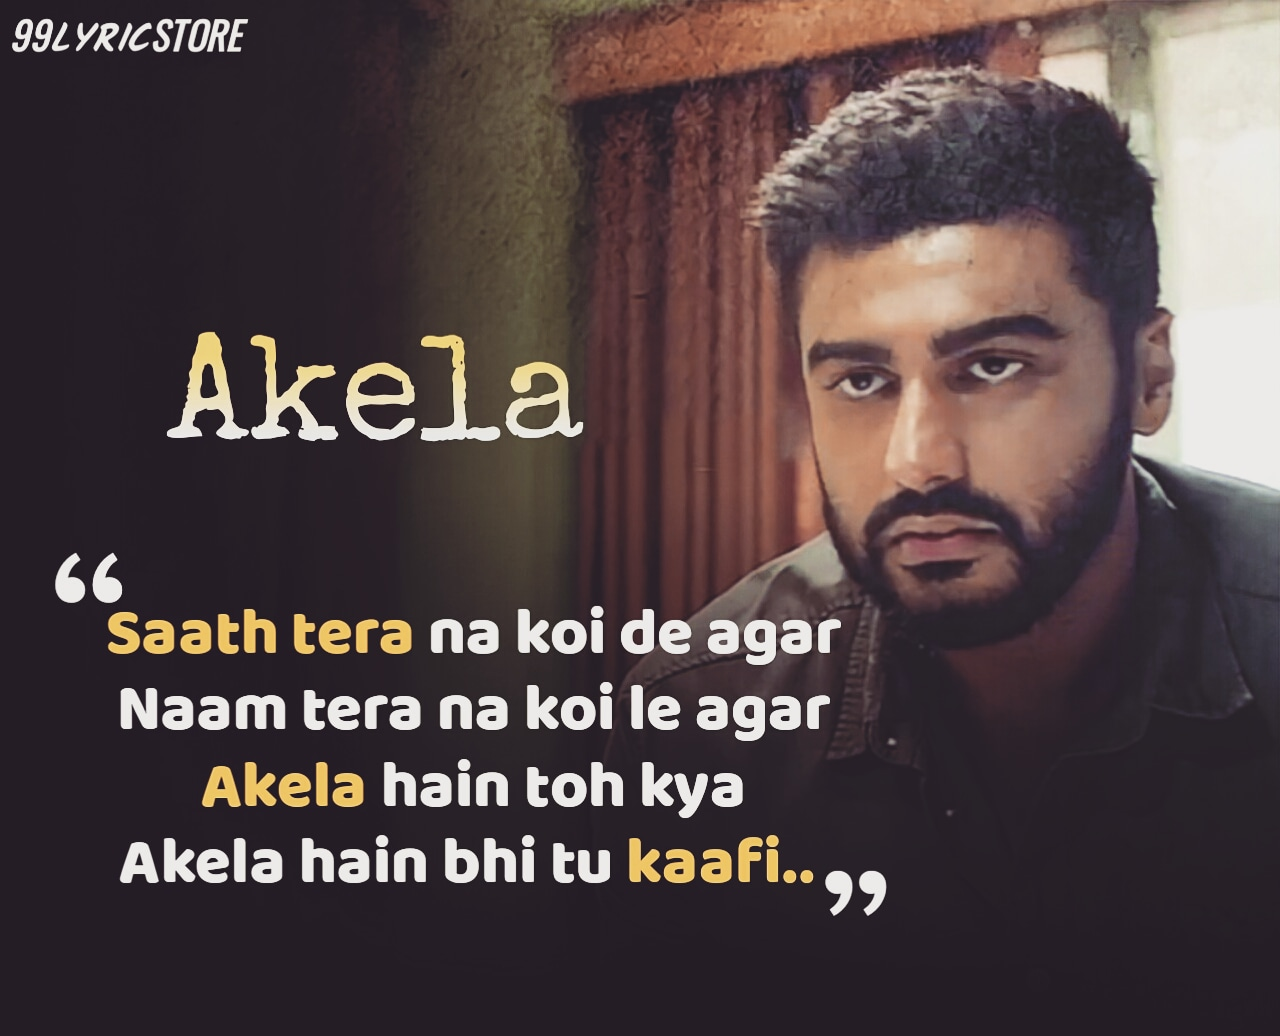 Akela Hindi Song Lyrics sung by Abhijeet Srivastava from movie India's Most Wanted